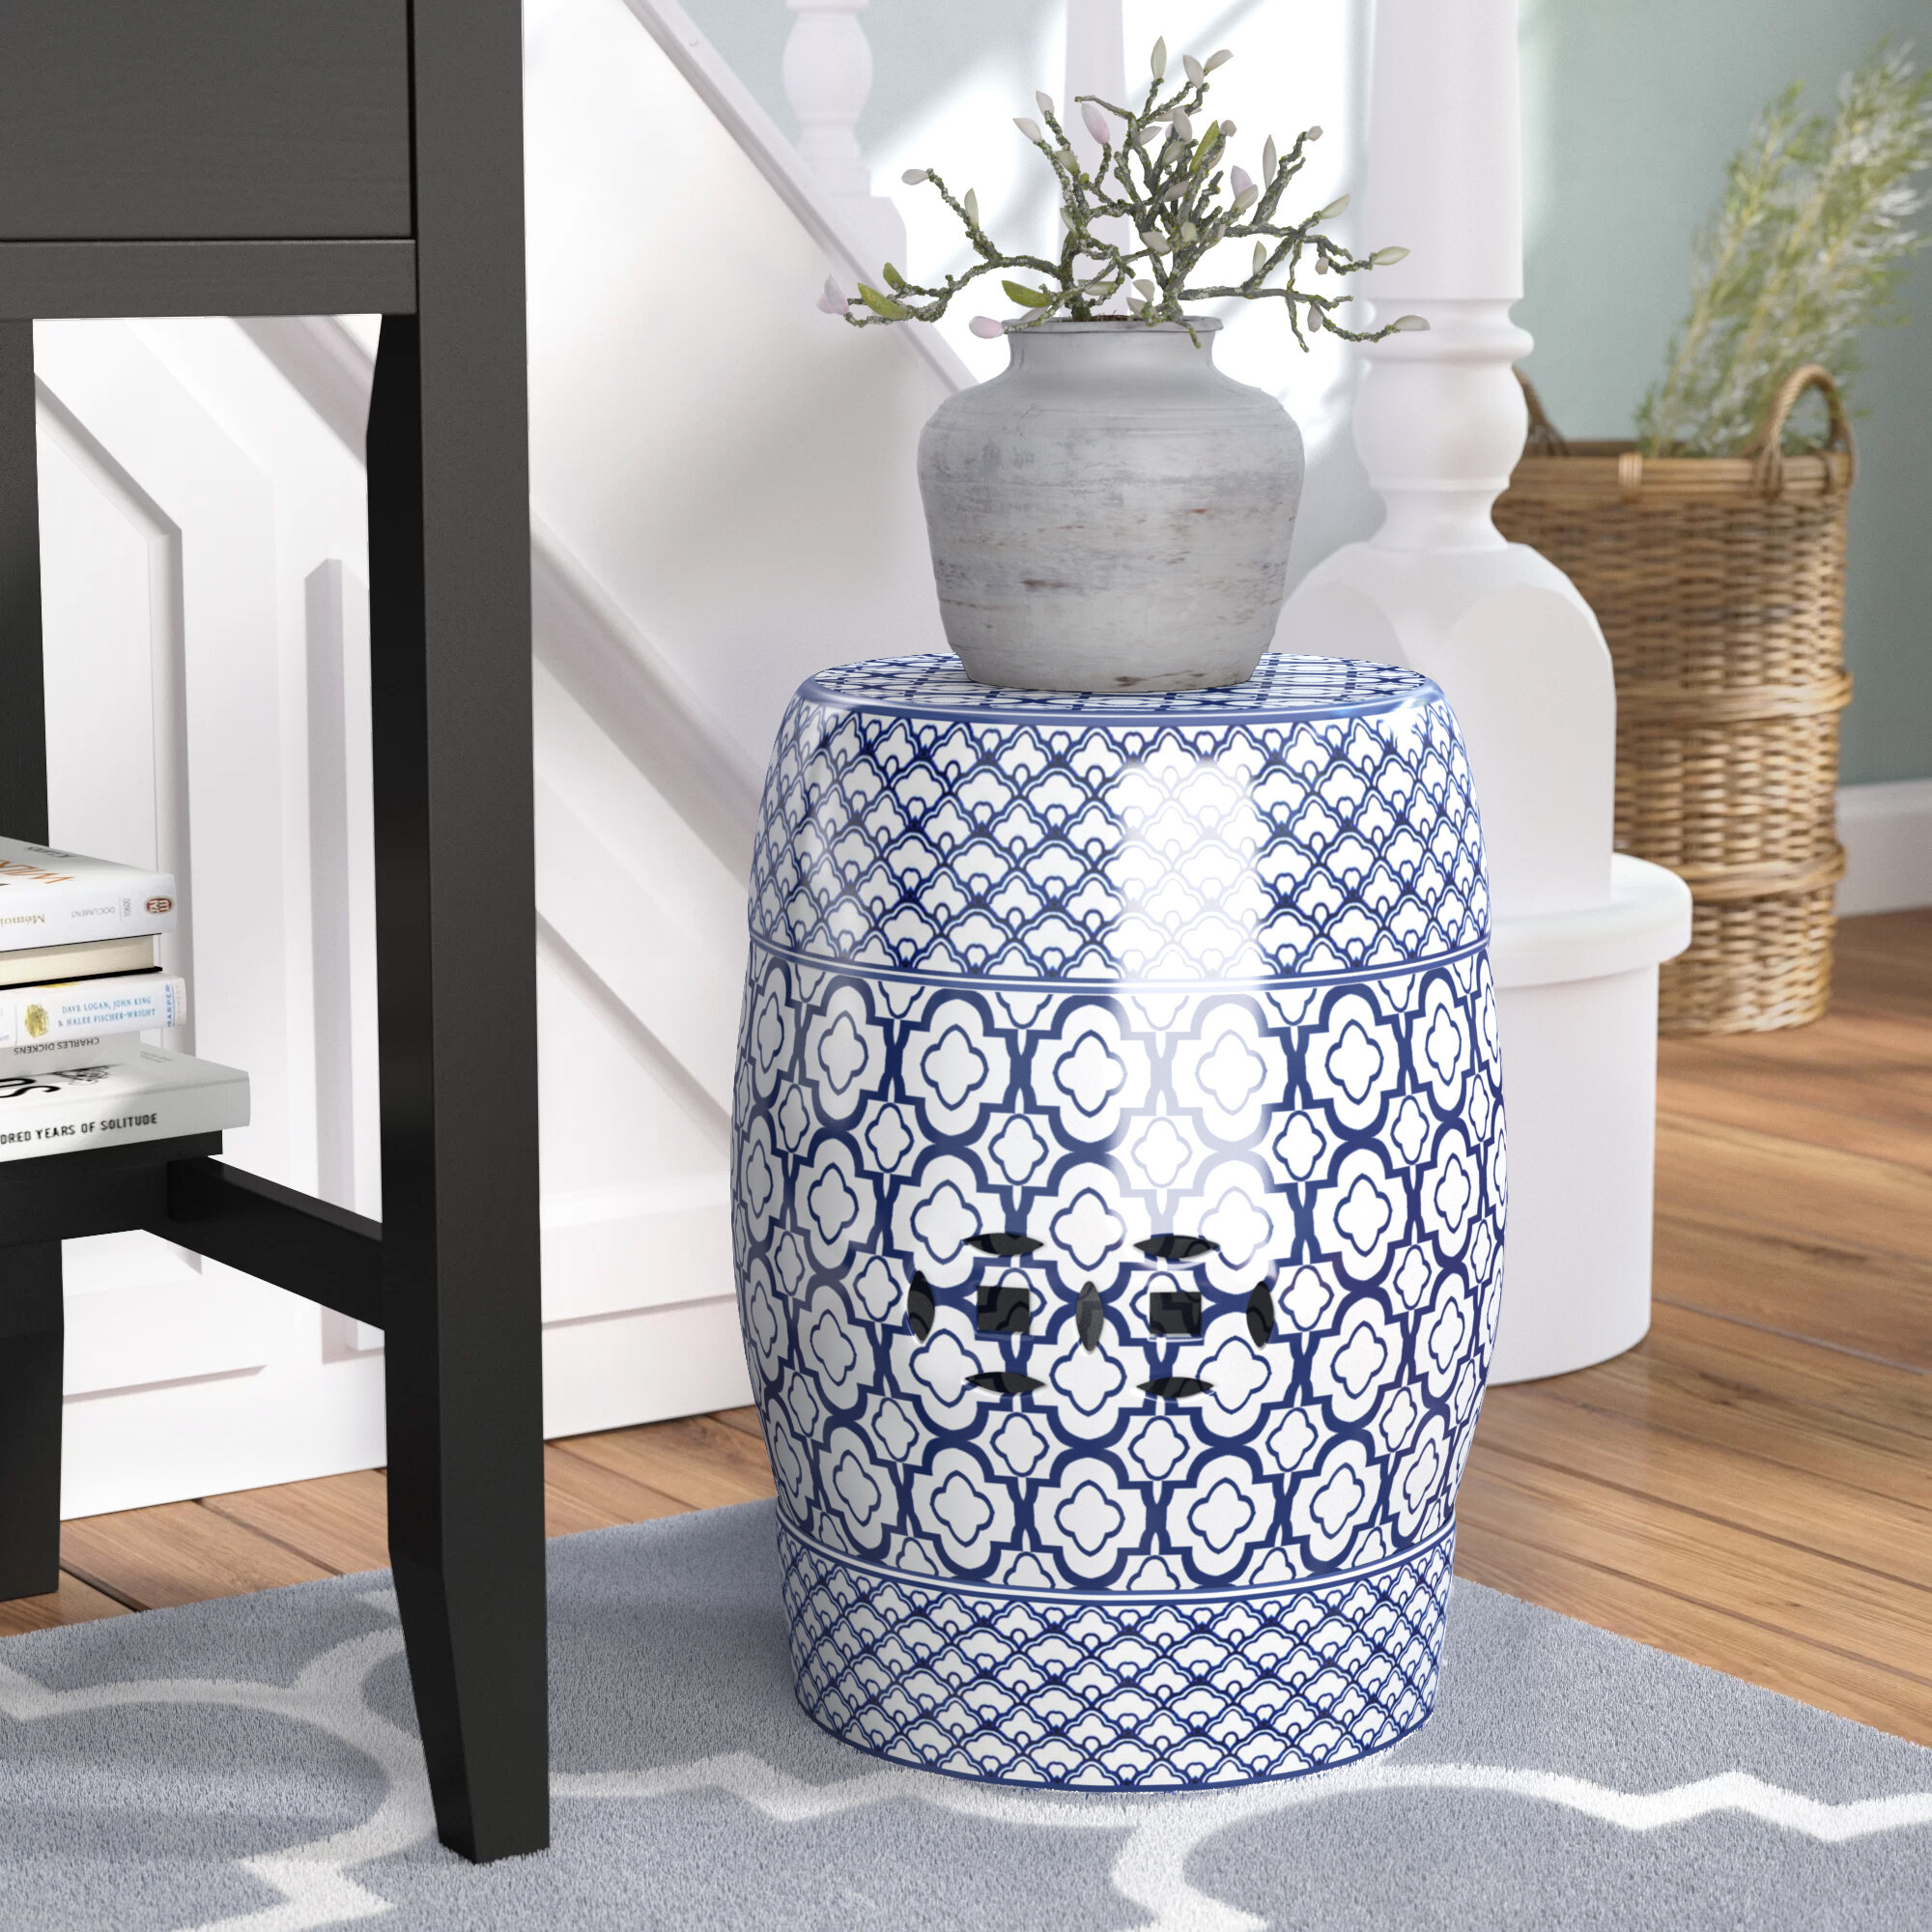 Blue Ceramic Garden Stools You'Ll Love In 2020 | Wayfair Throughout Tillia Ceramic Garden Stools (View 17 of 25)